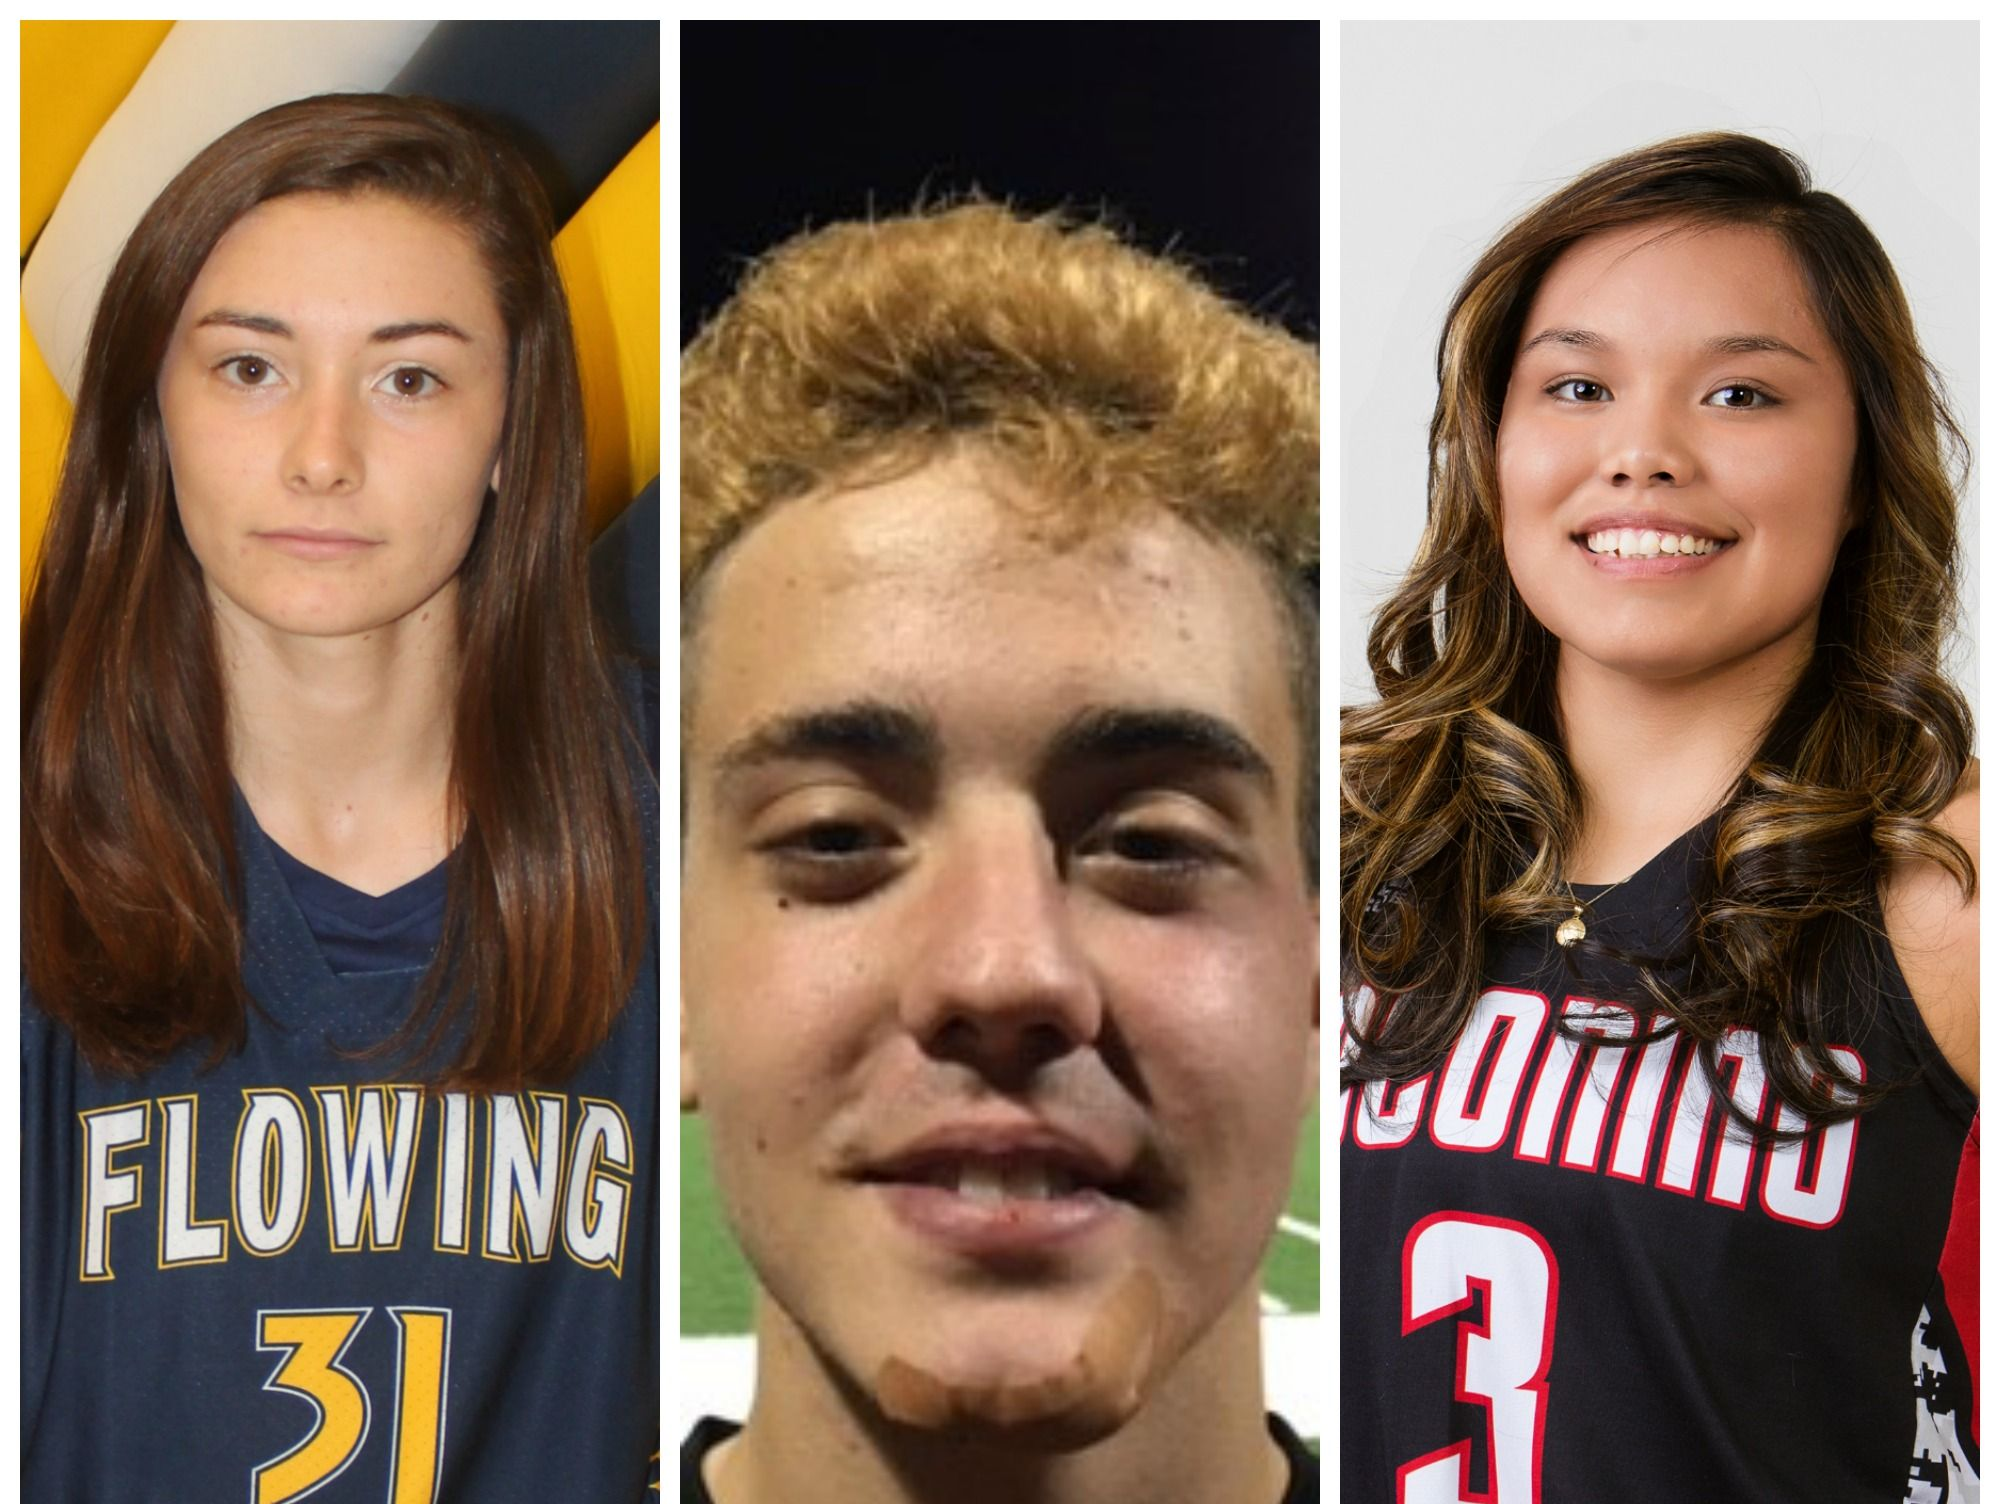 """Congratulations to the Arizona Sports Awards Academic All-Star of the Week, Karena Garcia, and Athletes of the Week, Alfonso """"Alfi"""" Calzado and Jacqulynn """"JJ"""" Nakai, presented by La-Z-Boy Furniture Galleries, for Jan. 19-26."""